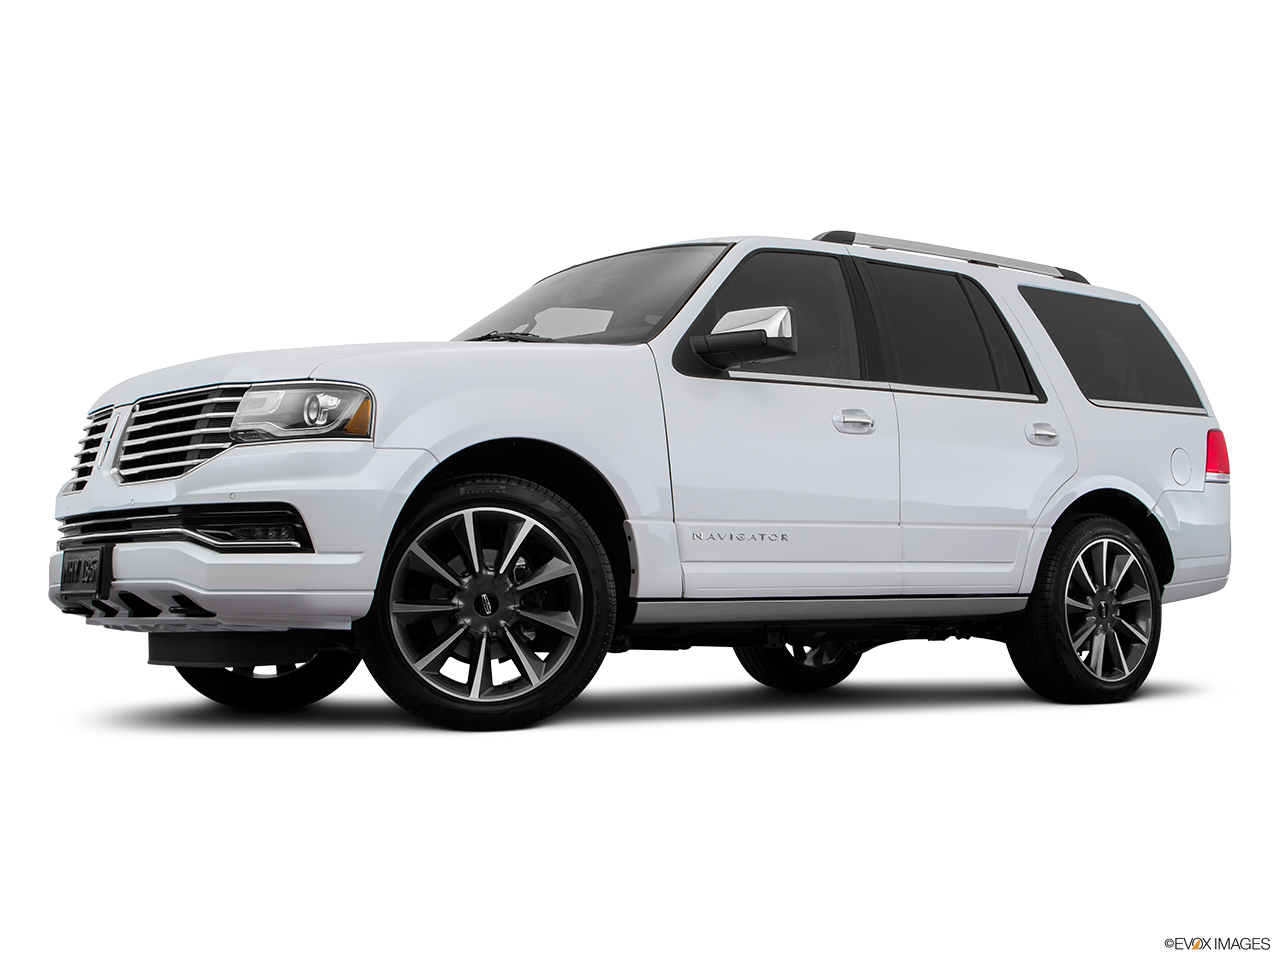 2016 Lincoln Navigator Reserve Low/wide front 5/8.